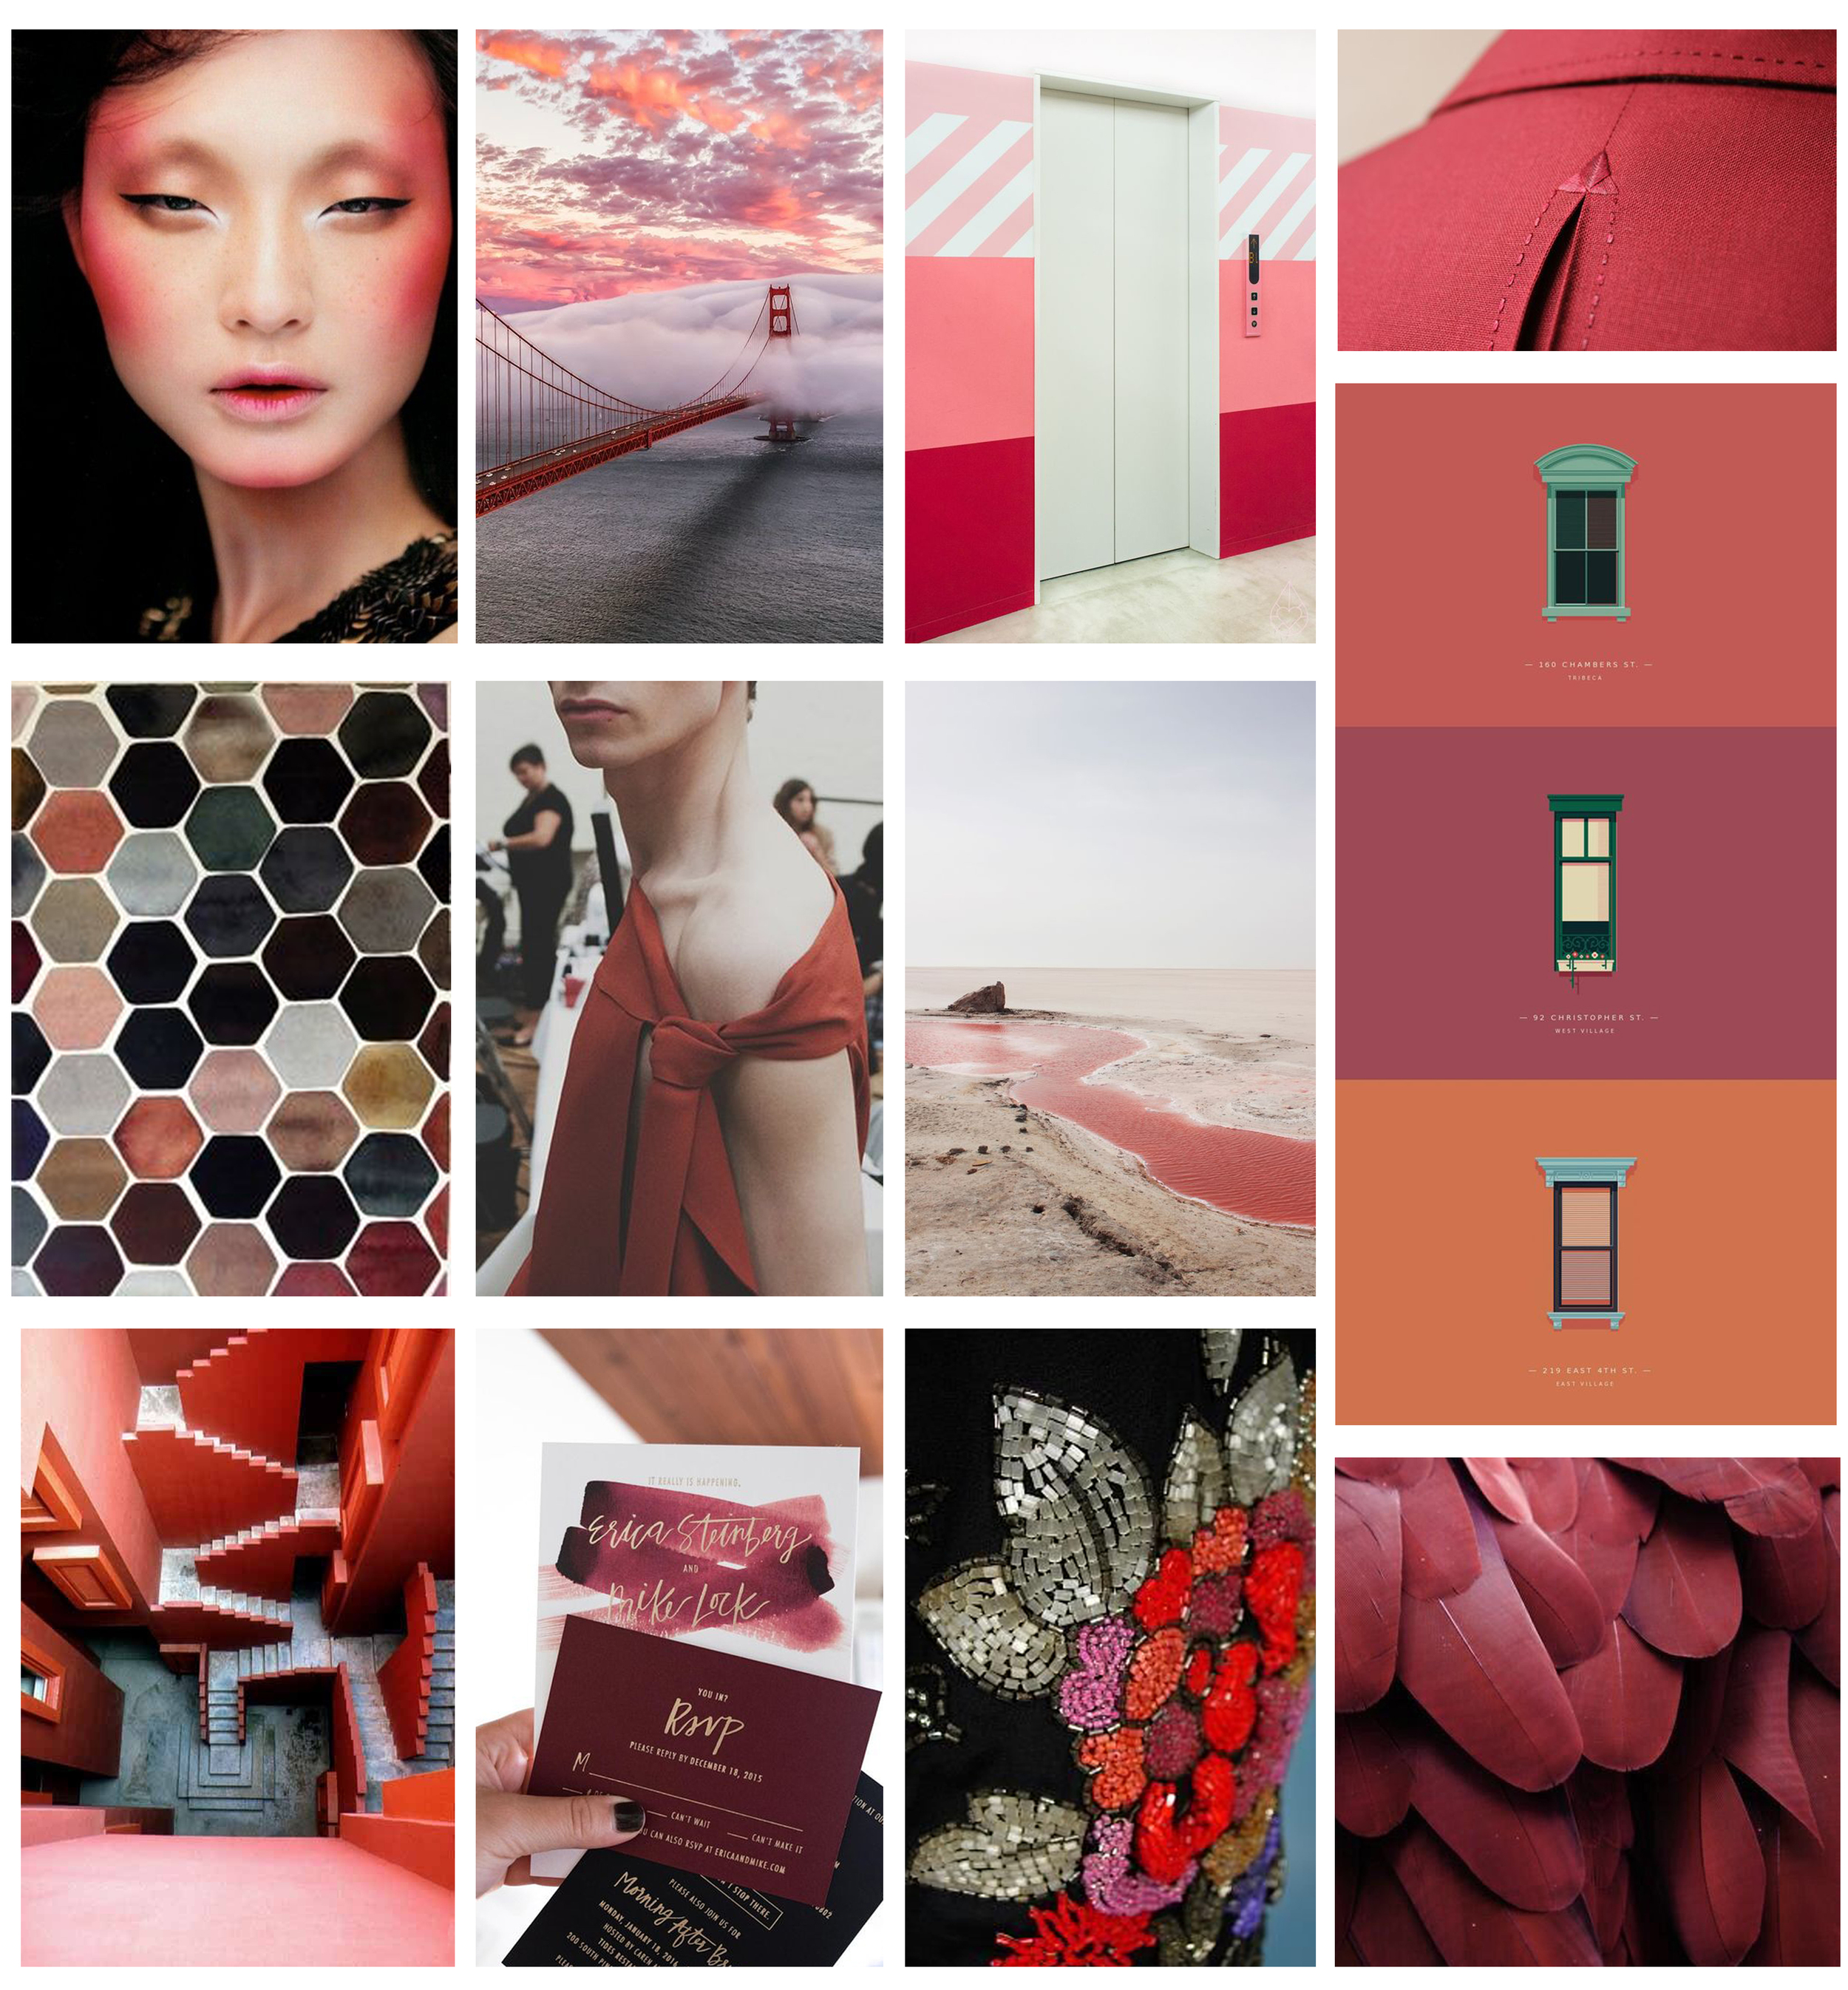 WEEKLY INSPIRATION WITH MONDAY MOOD BOARD 53 | THE PAPER CURATOR